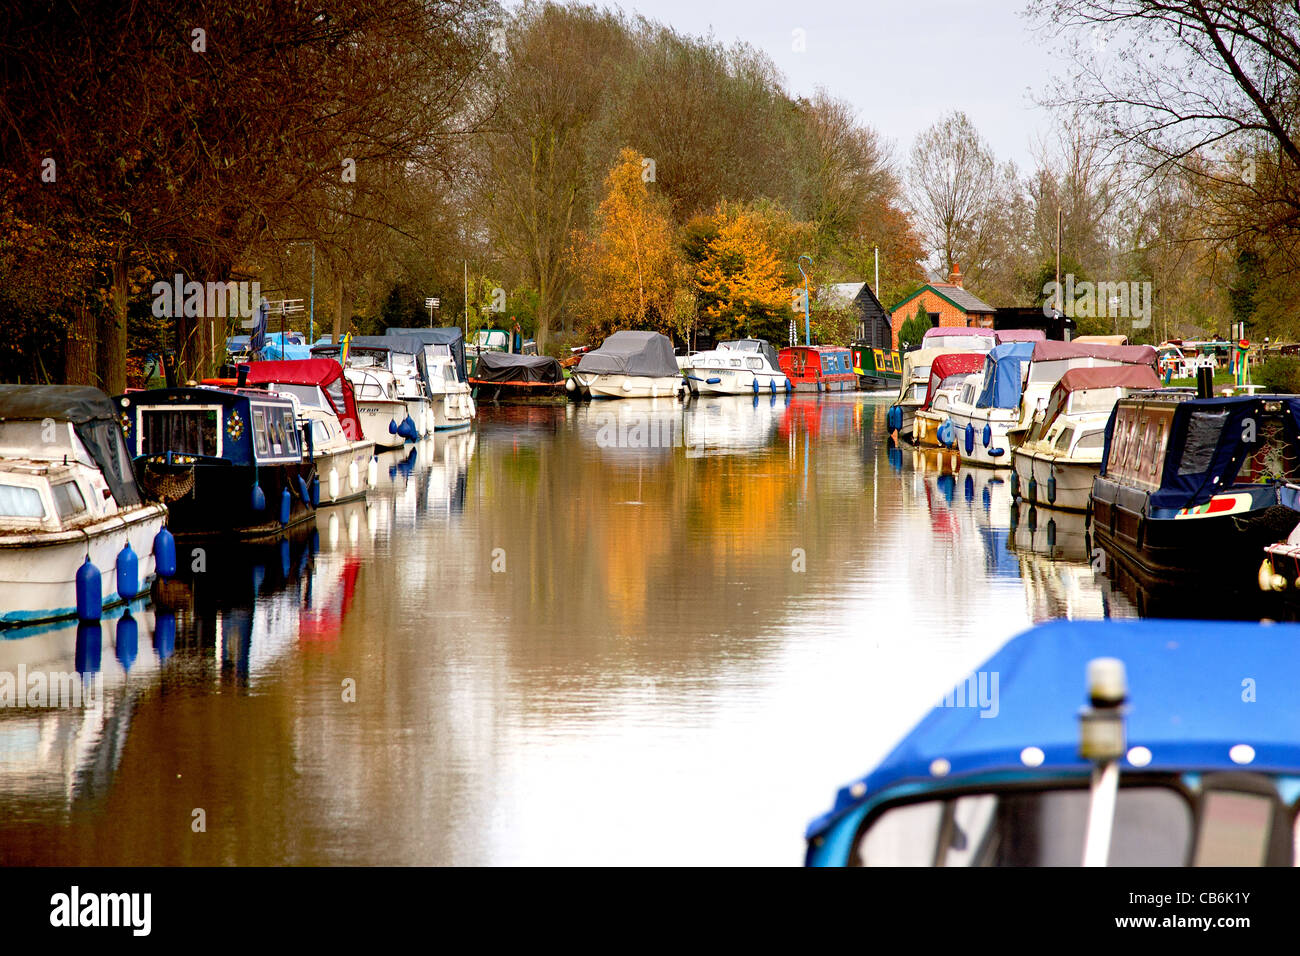 papermill lock in Chelmsford with leisure craft moored along the bank - Stock Image